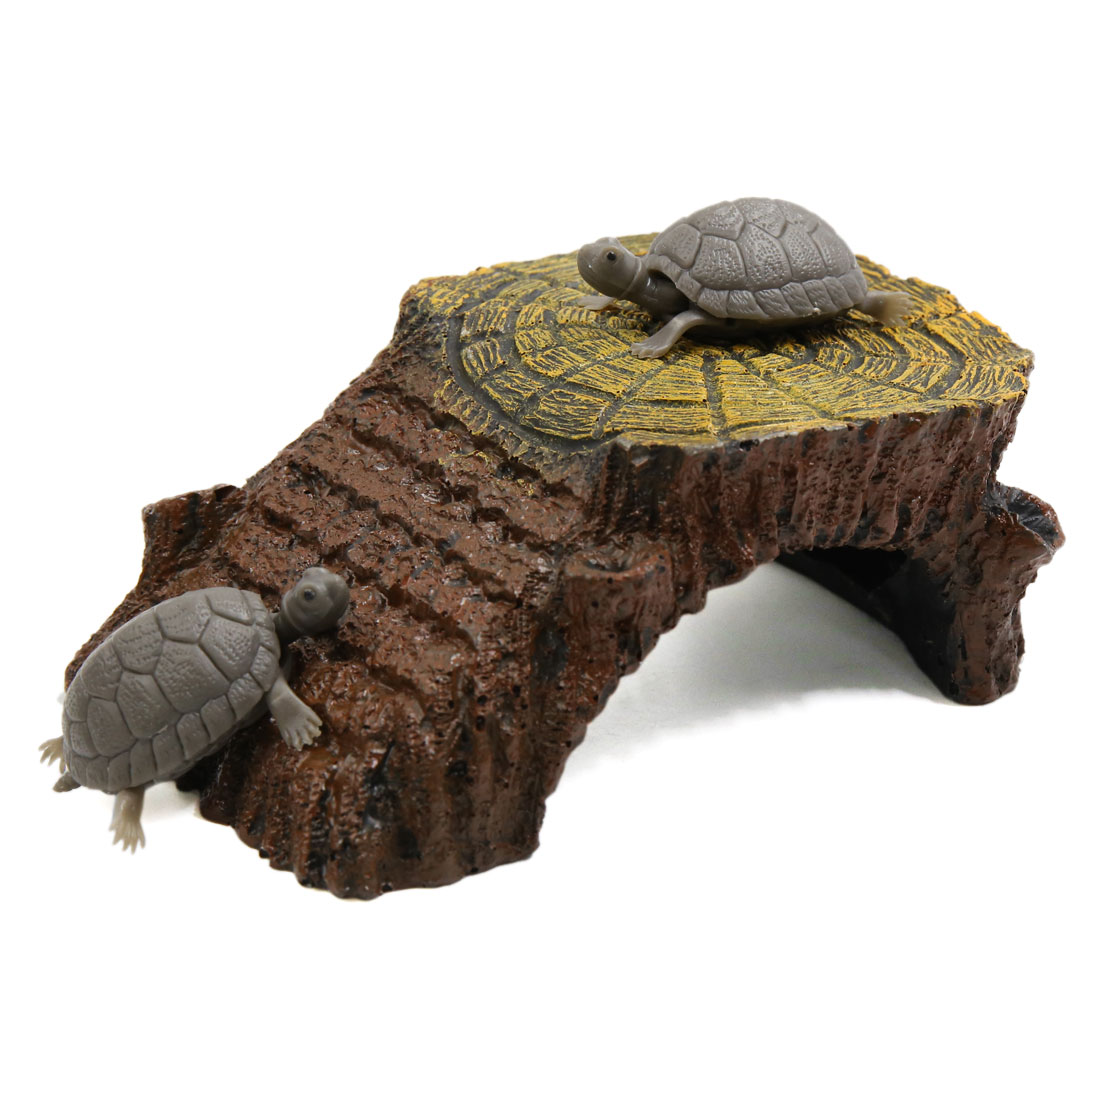 Resin Climb Ramp Habitat Hut Aquarium Landscape Decoration for Aquatic Tortoise